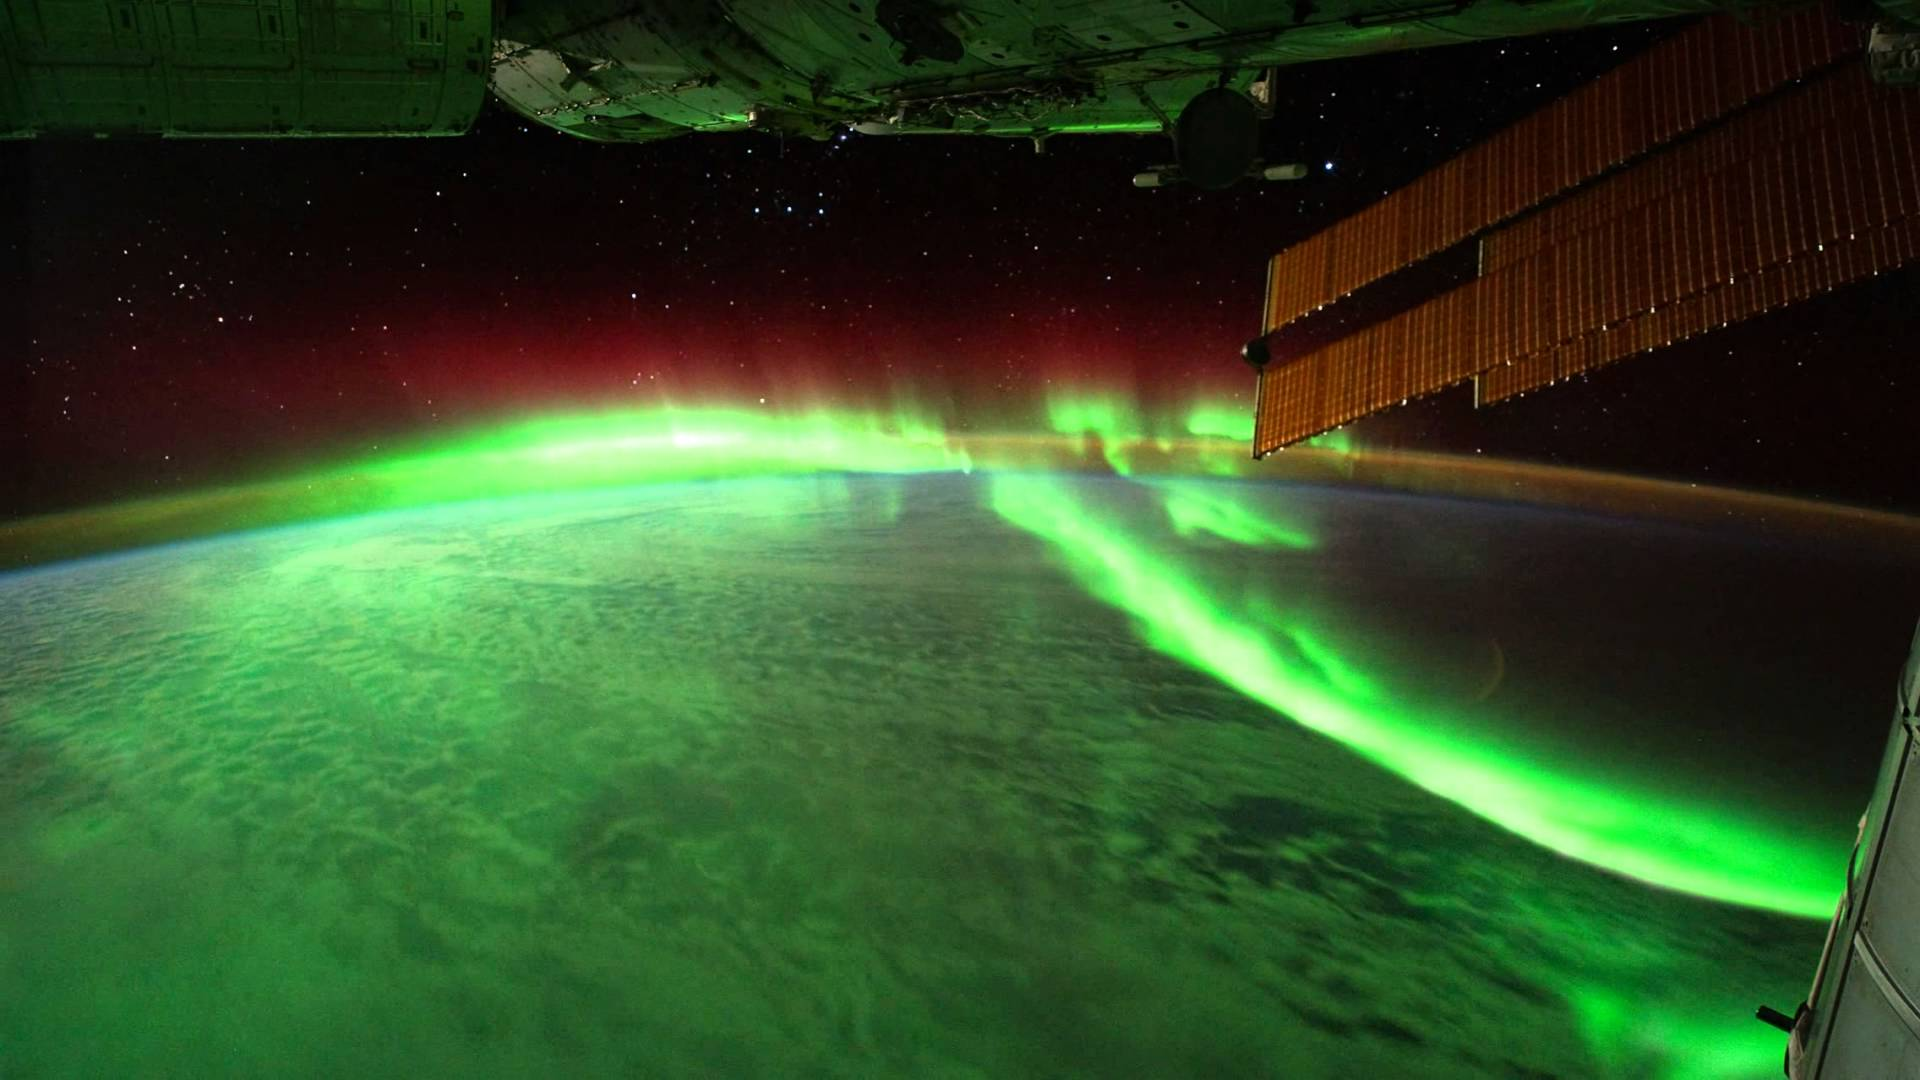 Image of auroras just above the Earth's surface obtained by the International Space Station.  Image credit: NASA